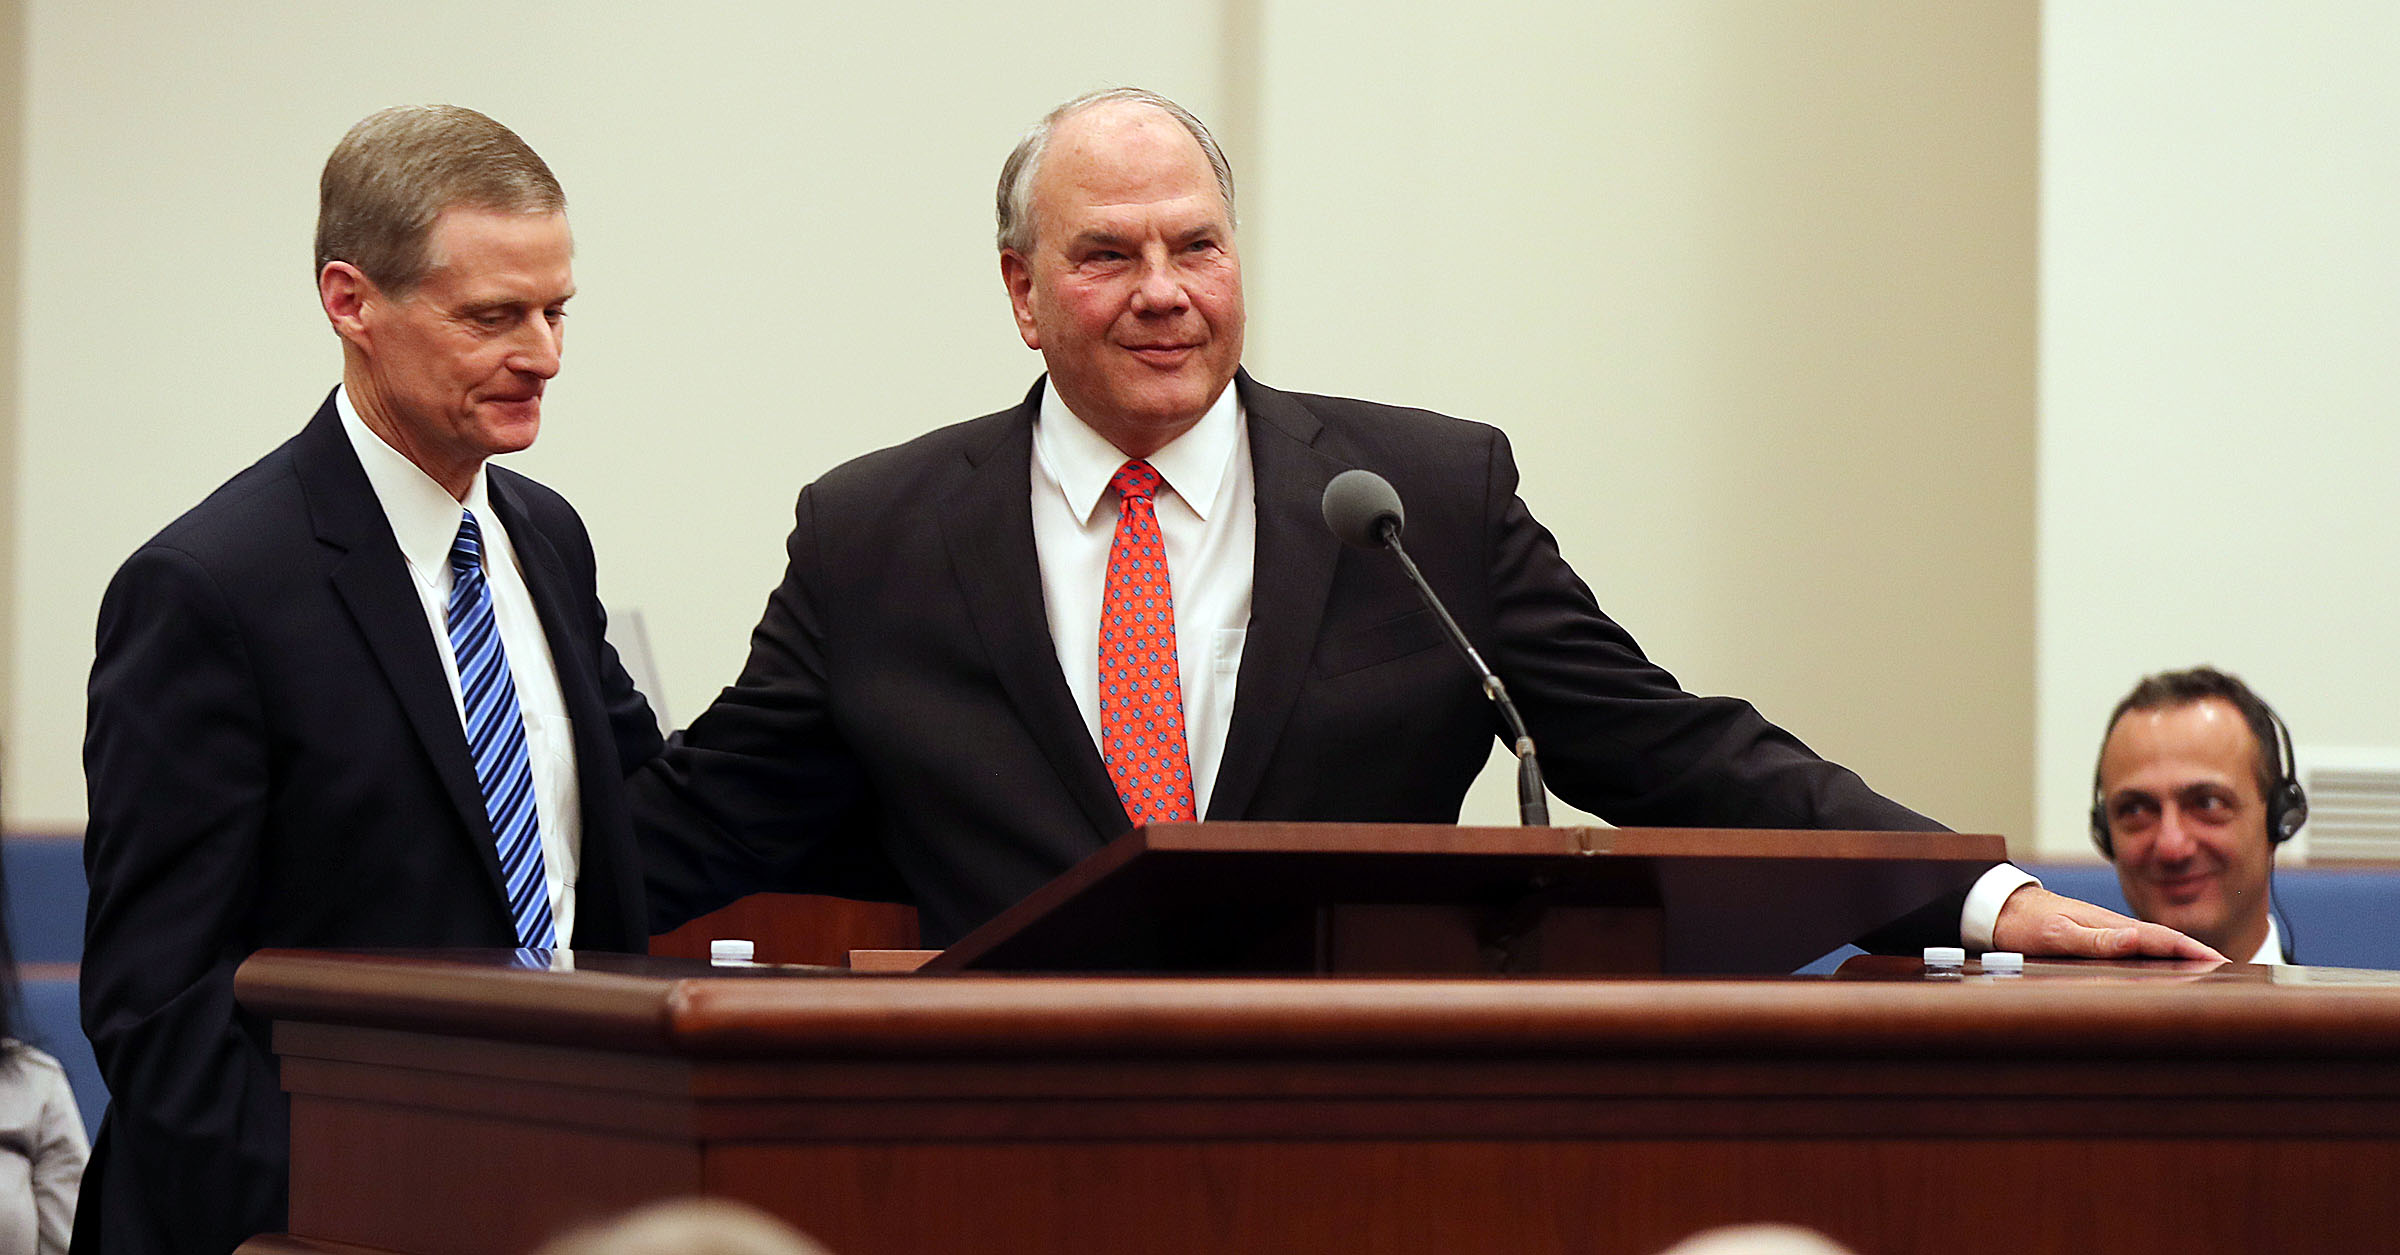 Elder Ronald A. Rasband, right, of the Quorum of the Twelve Apostles of The Church of Jesus Christ of Latter-day Saints speaks after an invitation by Elder David A. Bednar during a press briefing at a meetinghouse on the Rome Italy Temple grounds on Monday, Jan. 14, 2019. At back right is President Marcello De Vito, president of the Rome City Council.